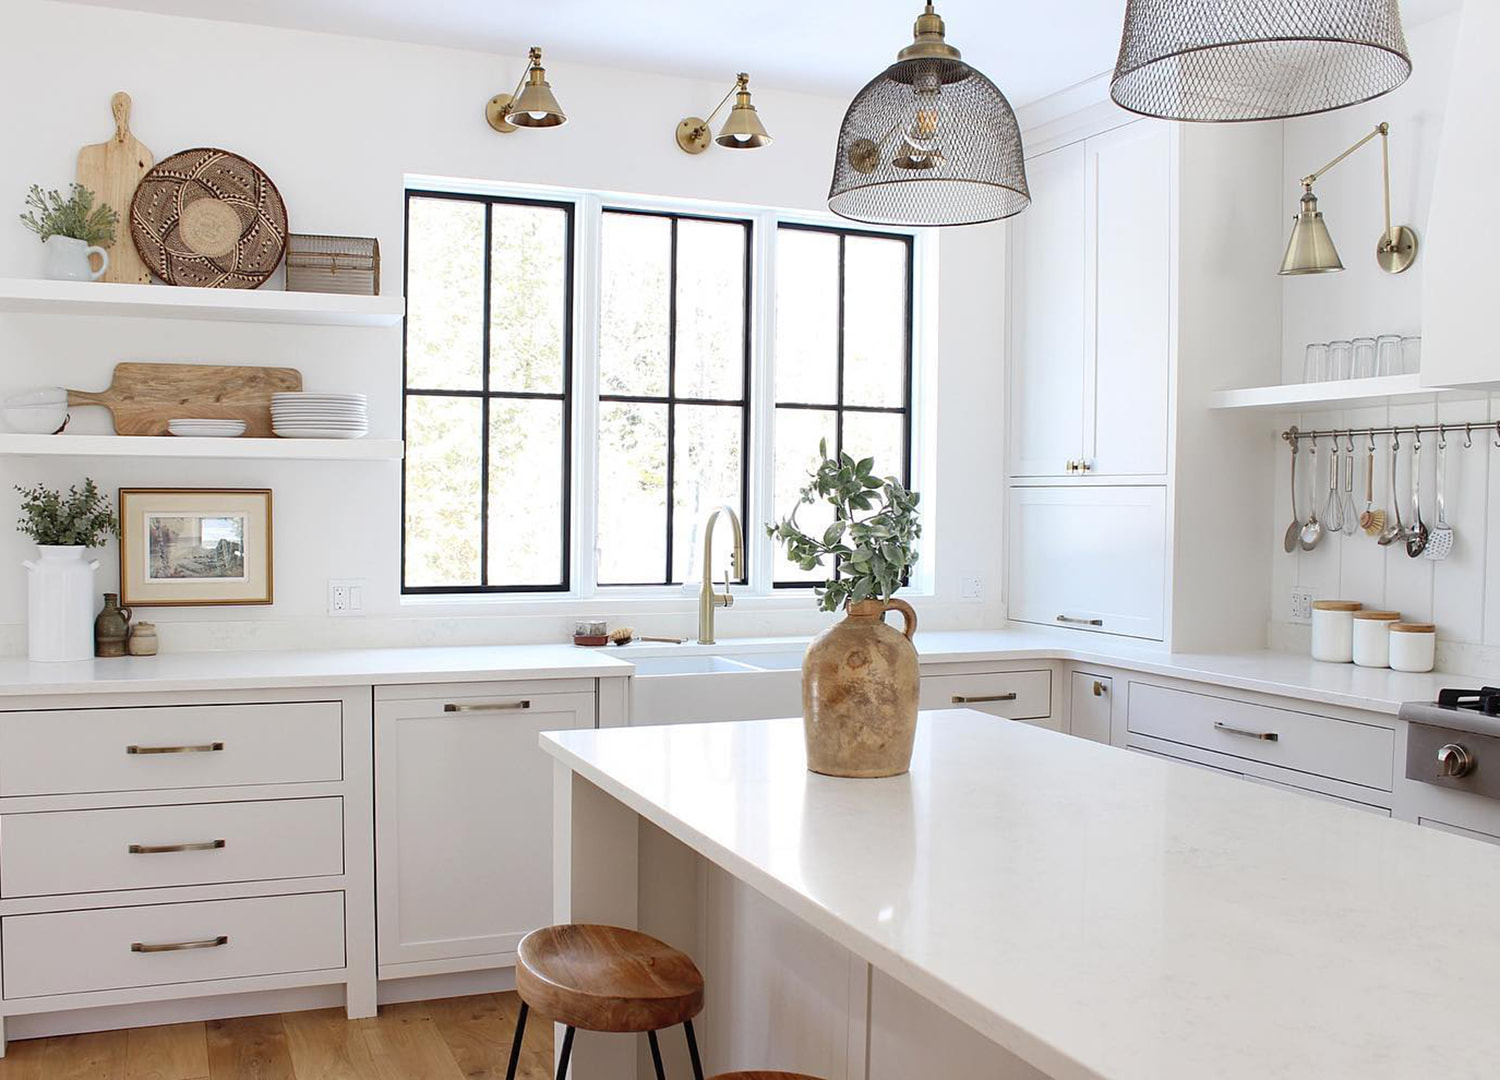 Black grille windows in white kitchen with wood accent pieces